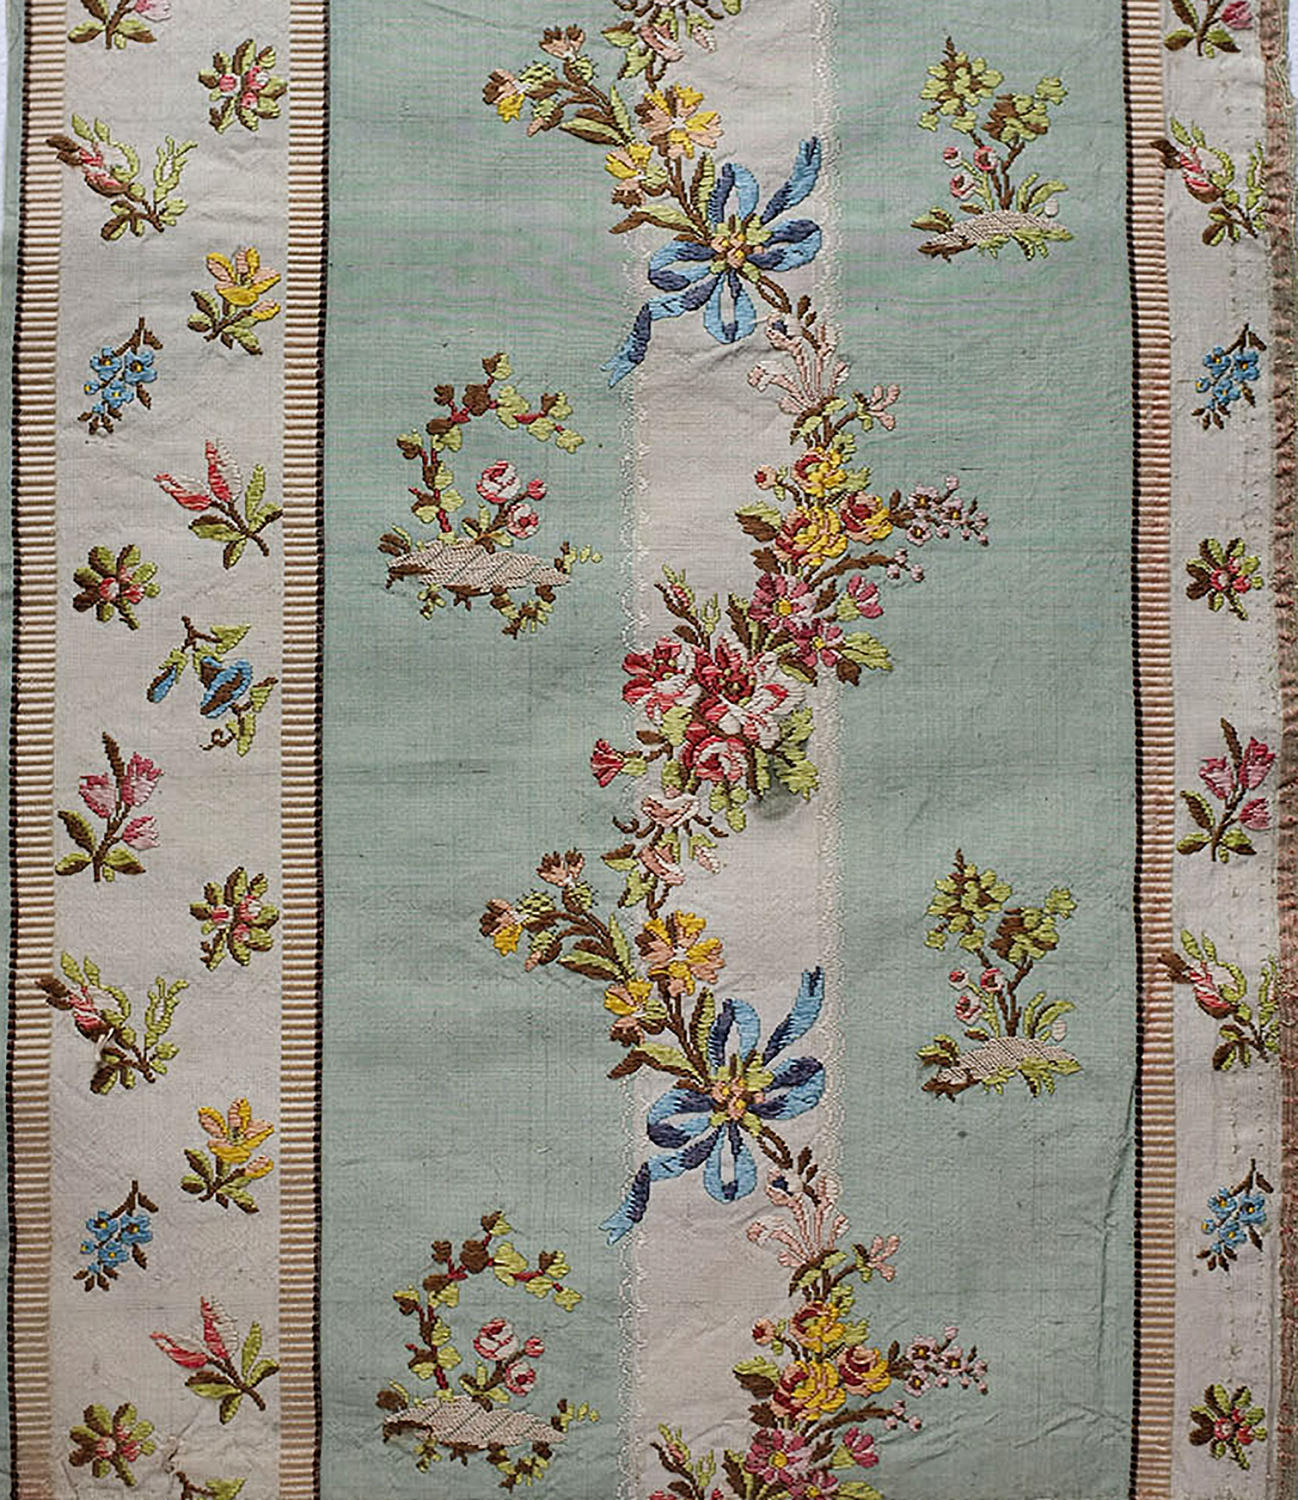 18th Century Silk Lampas Fragment - Blue Bows